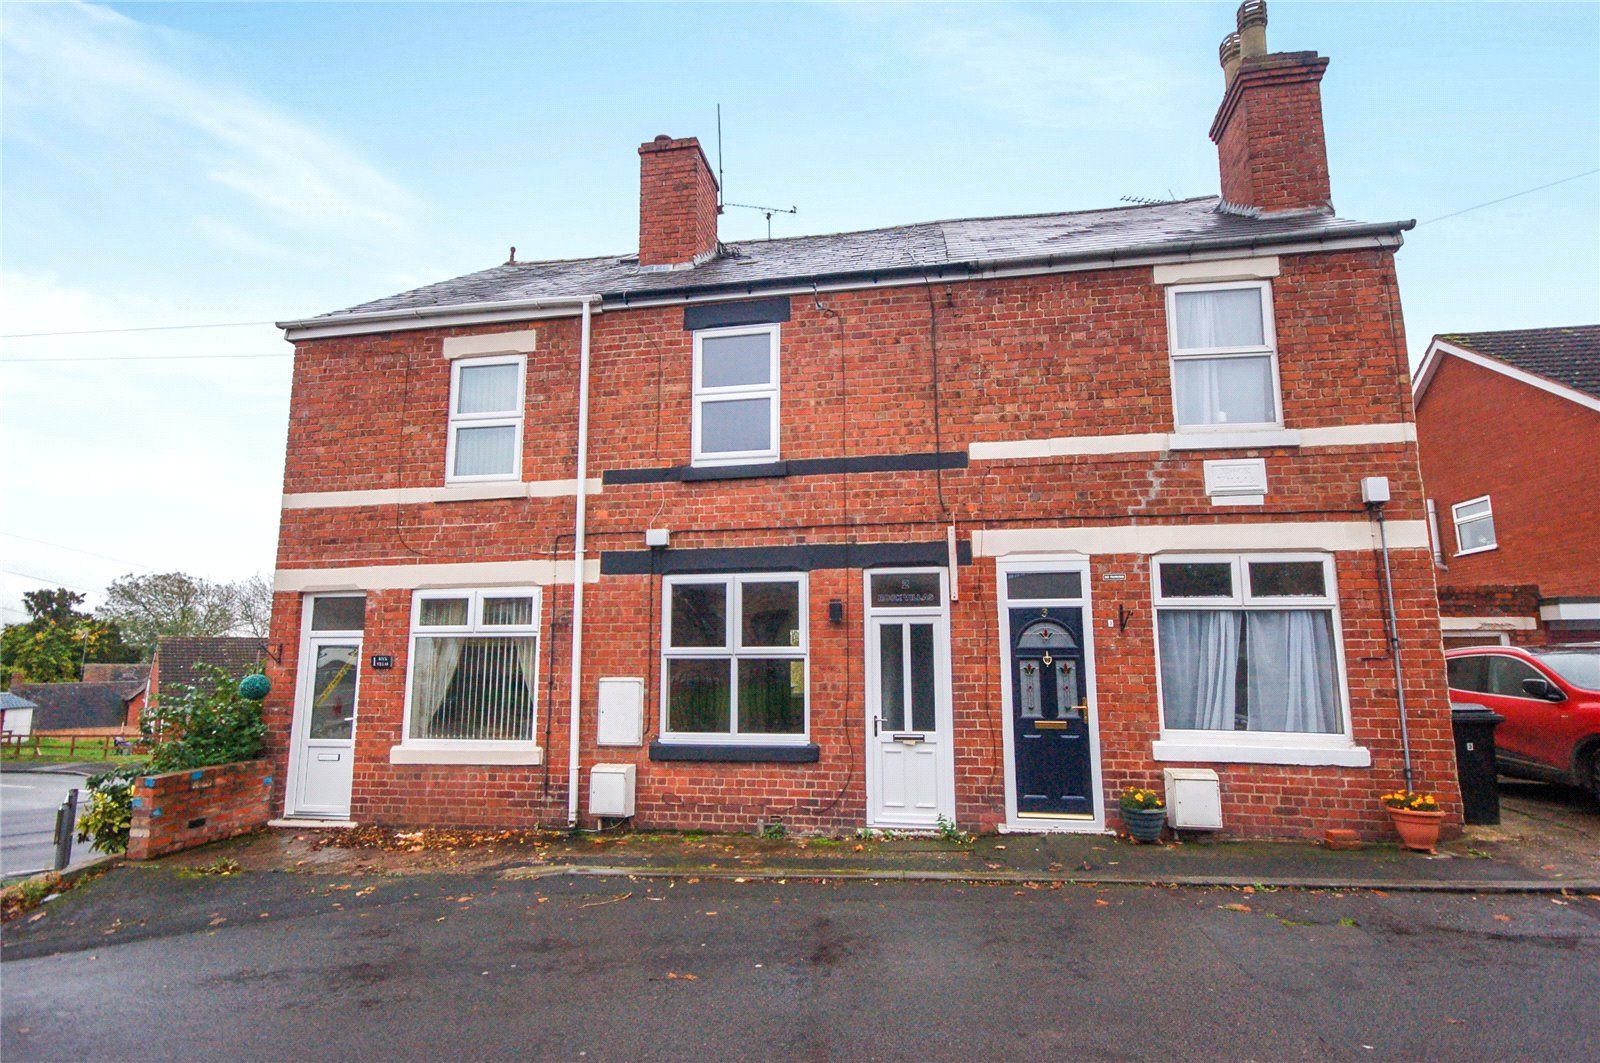 3 Bedrooms Terraced House for sale in 2 Rock Villas, Church Lane, Highley, Bridgnorth, WV16